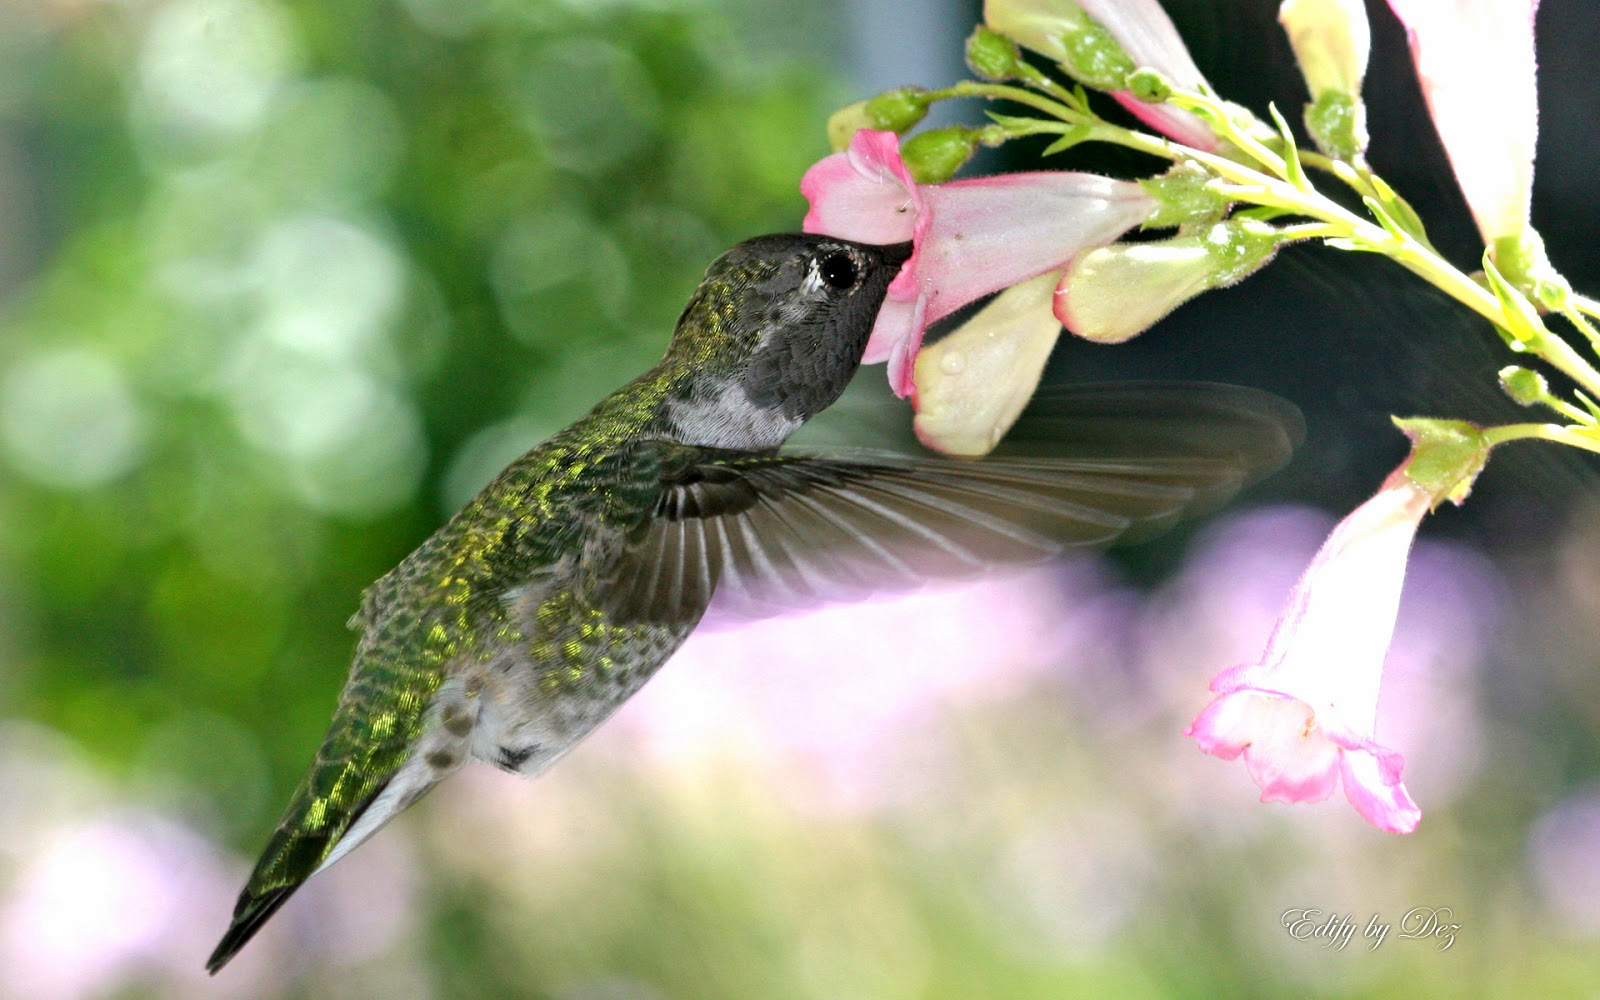 http://beautifulwallpapersfordesktop.blogspot.com/2014/01/hummingbird-wallpapers-hd.html